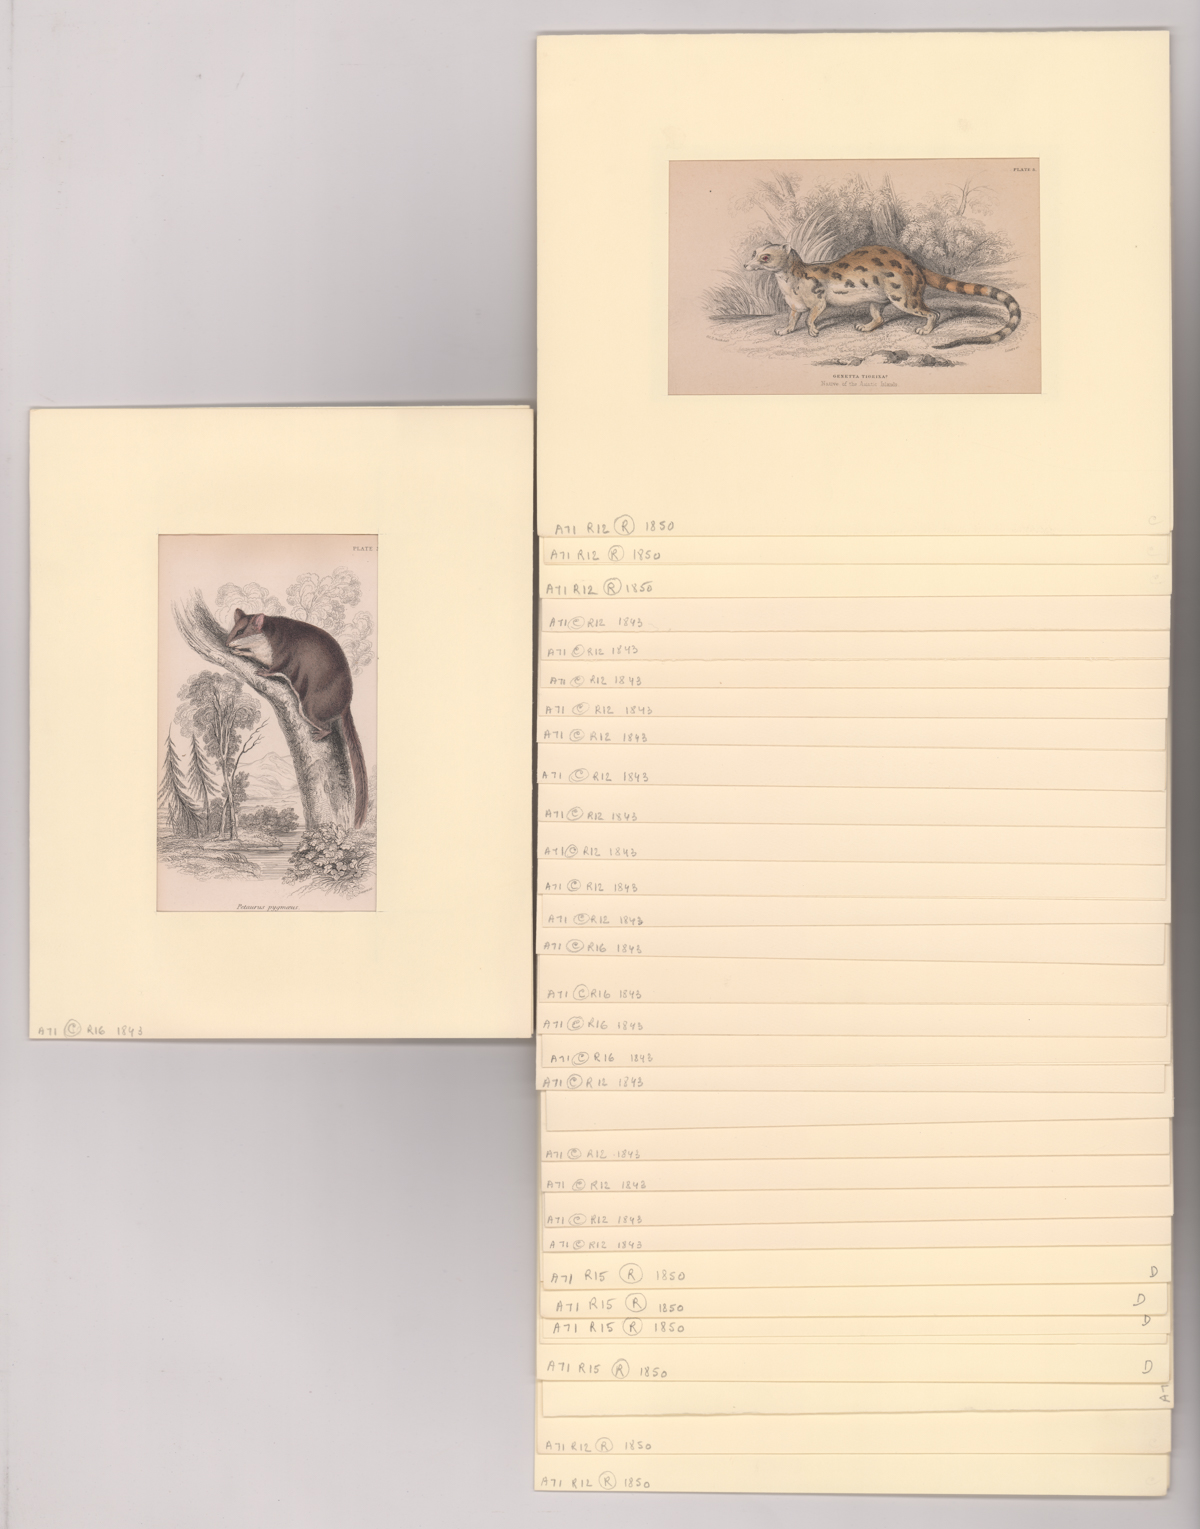 [31] Book Plates of Various Small Animals 1843-50